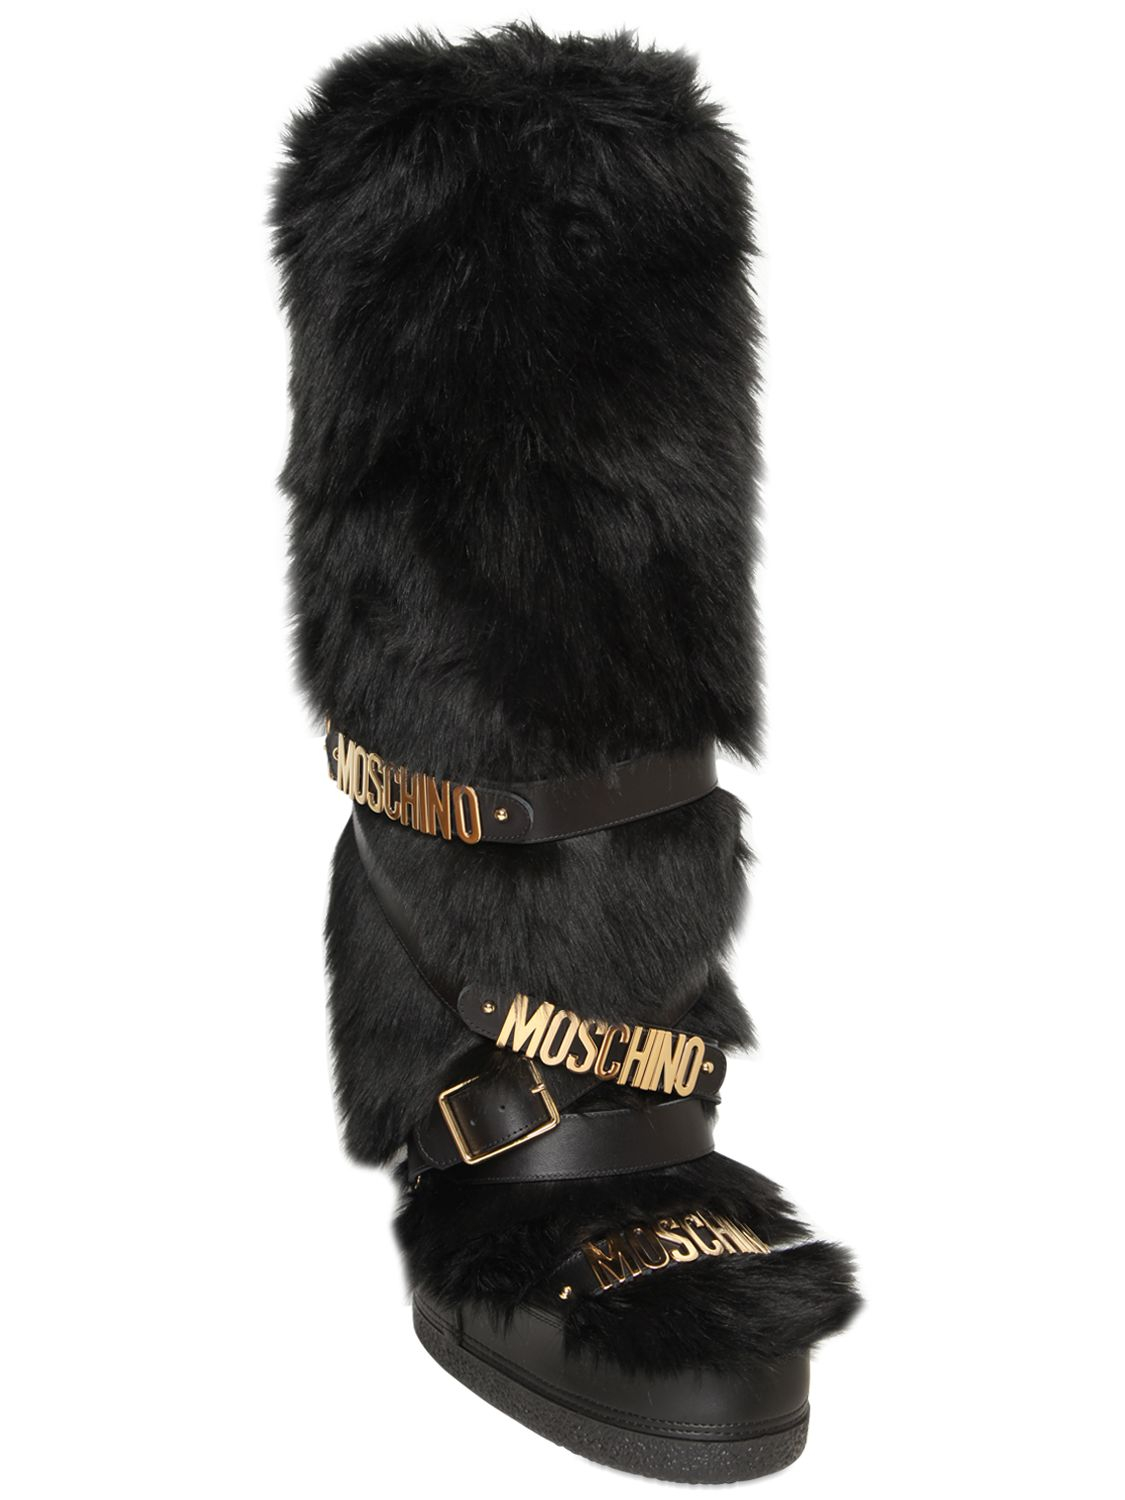 moschino boots sale